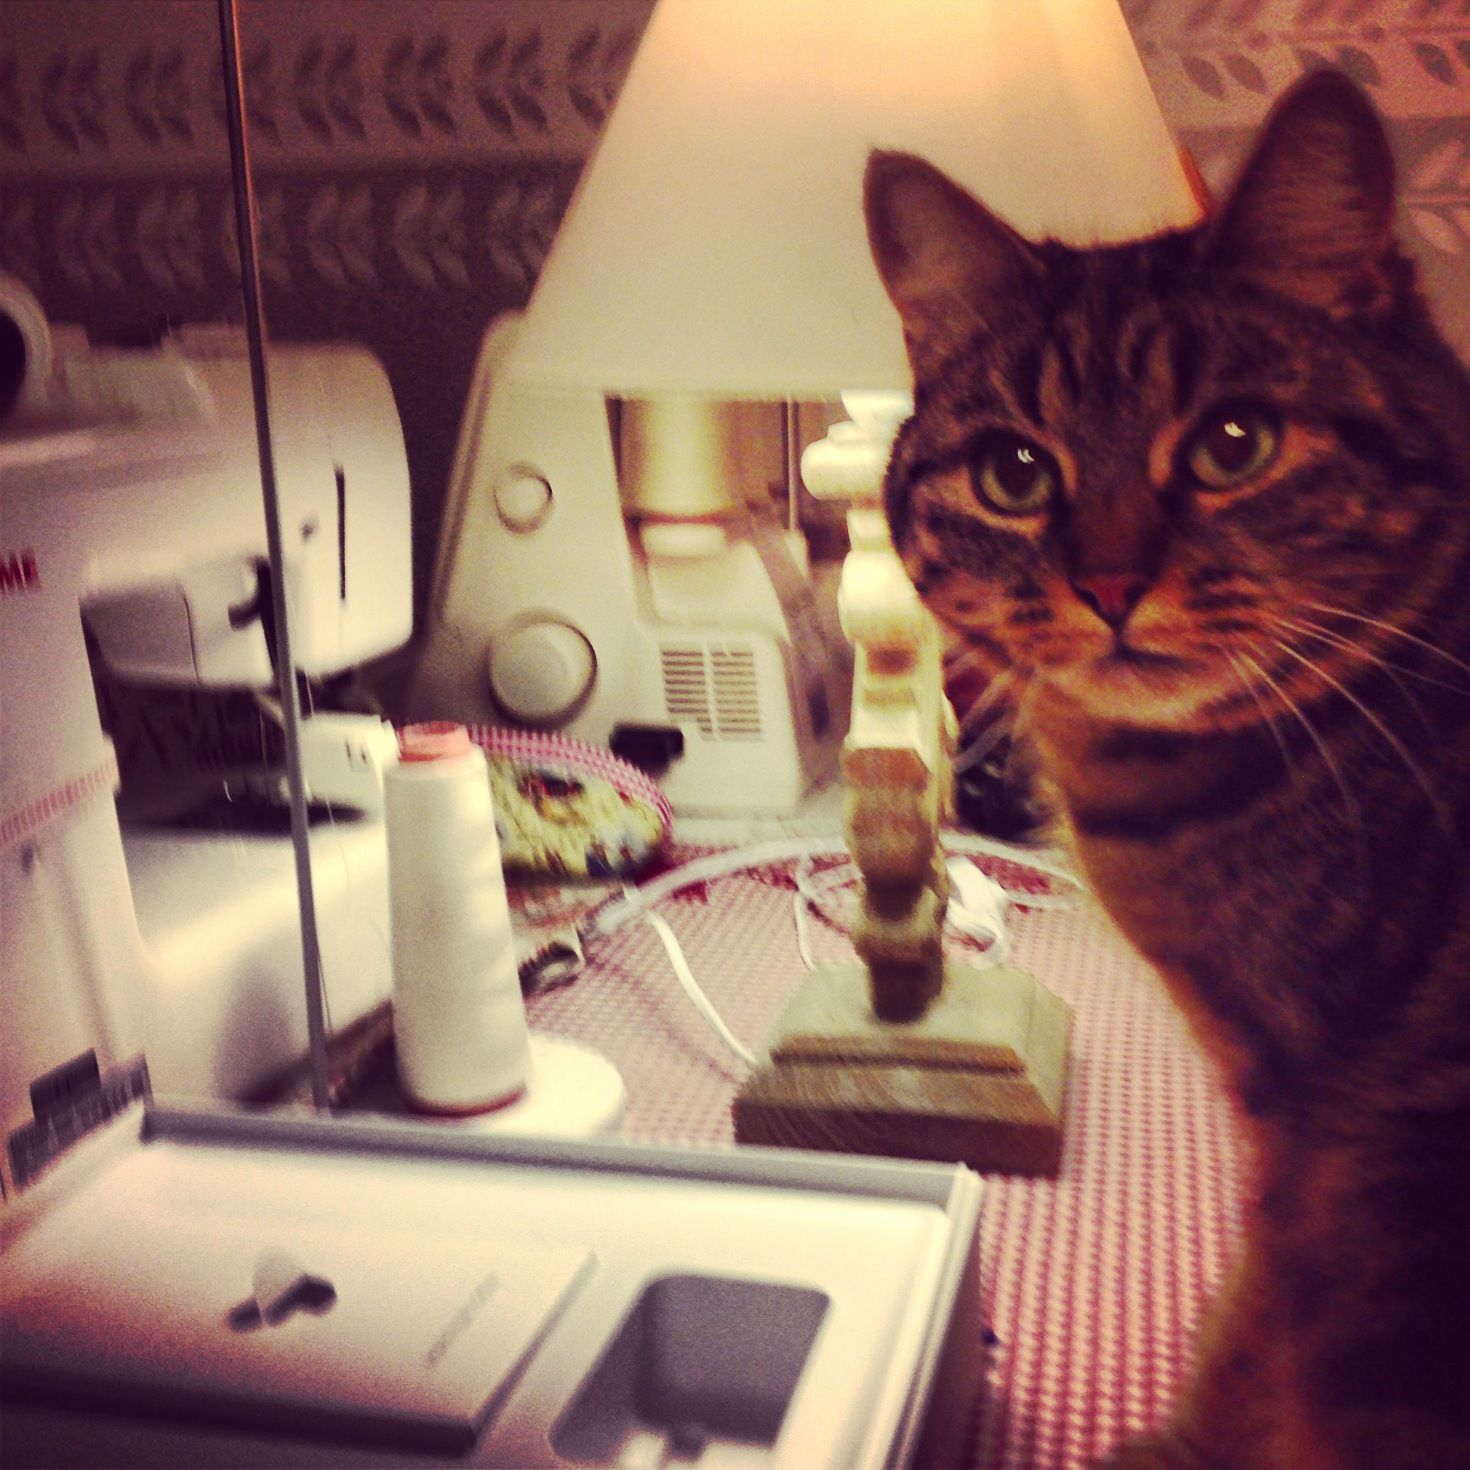 Cats and sewing machine...nice match